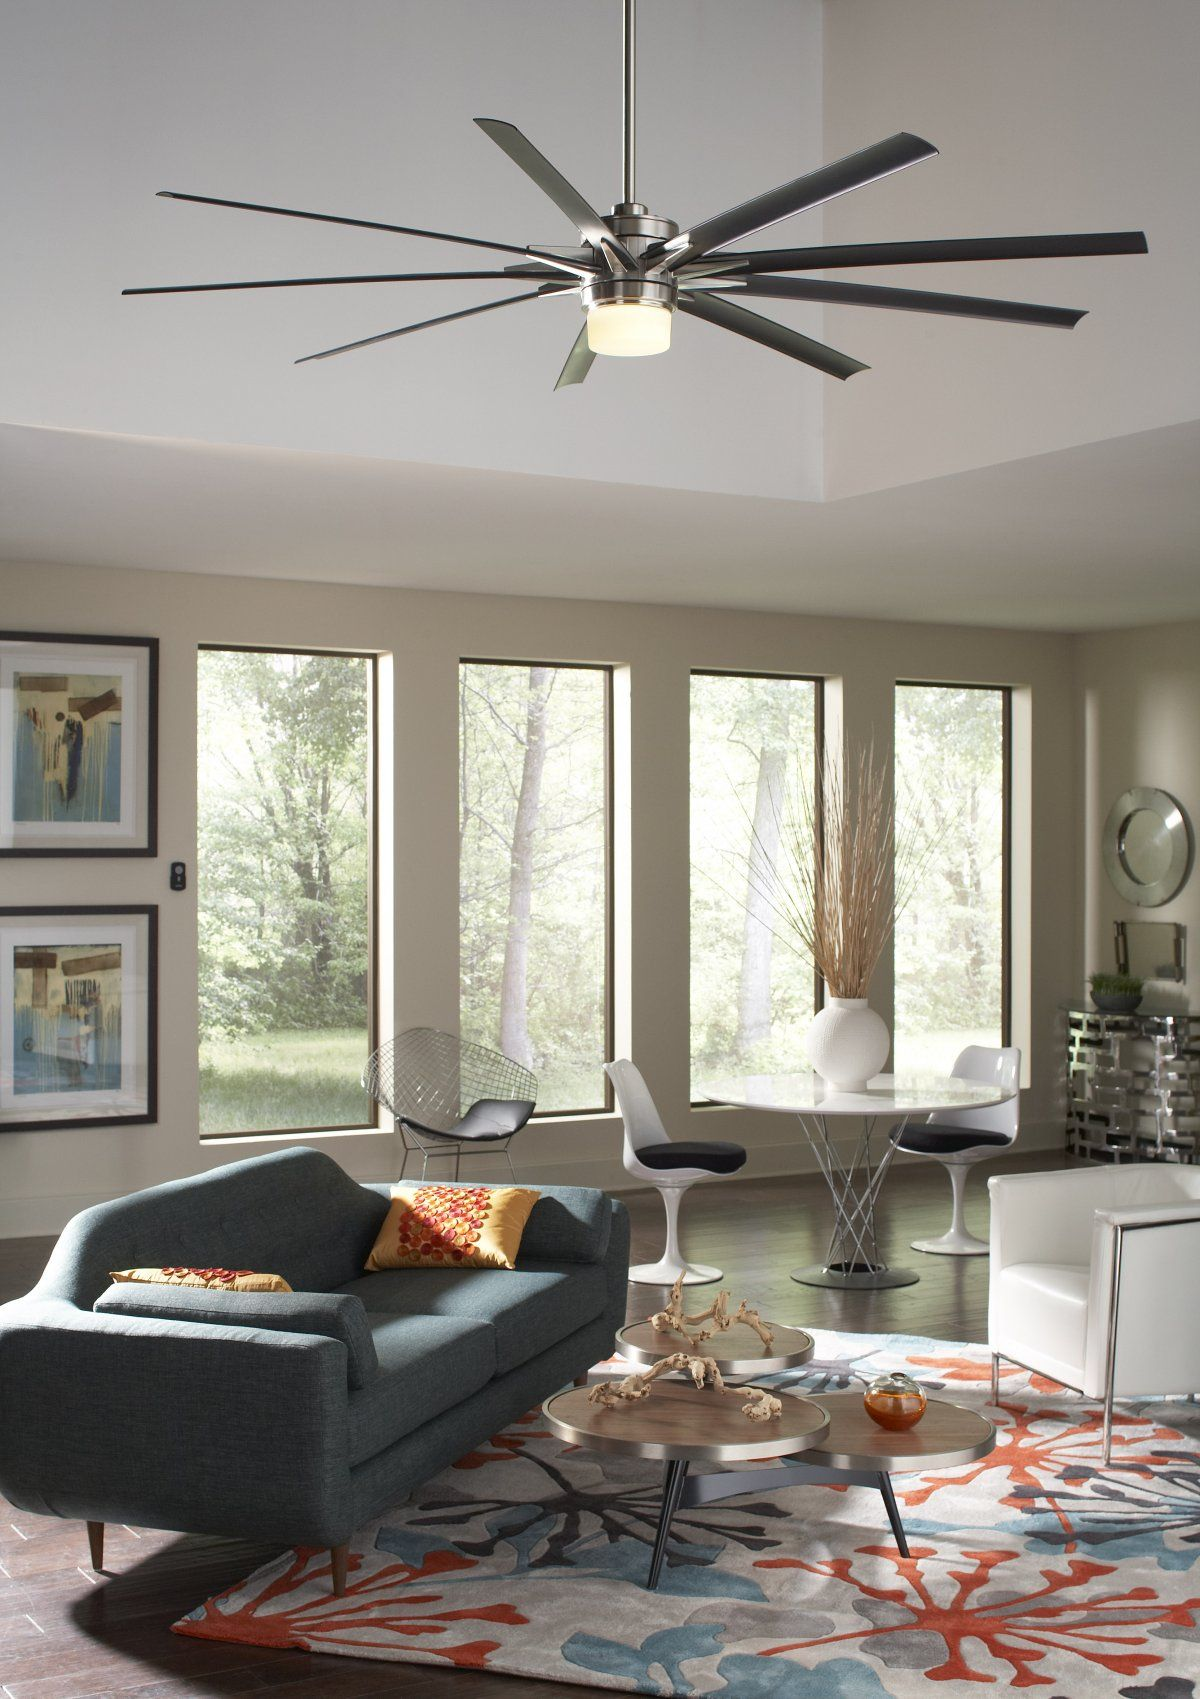 Decorating with Ceiling Fans Interior Design Ideas that